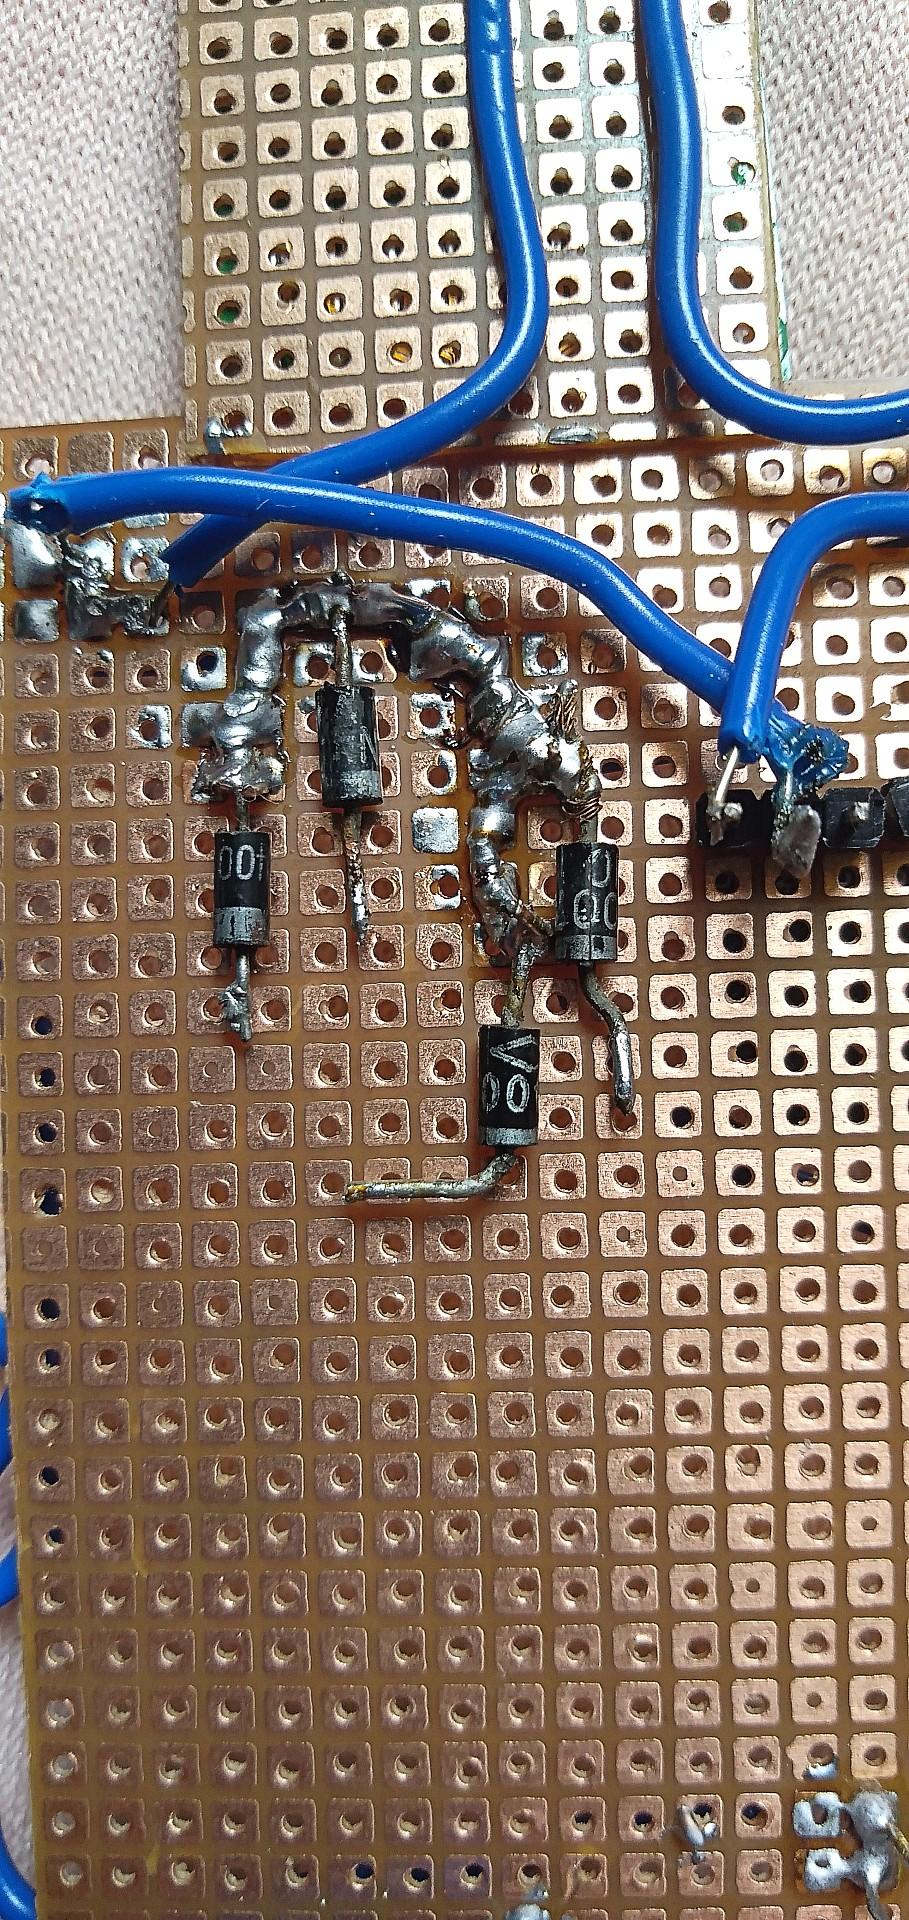 Hardware: PerfBoard Assembly (Diodes and Resistors)